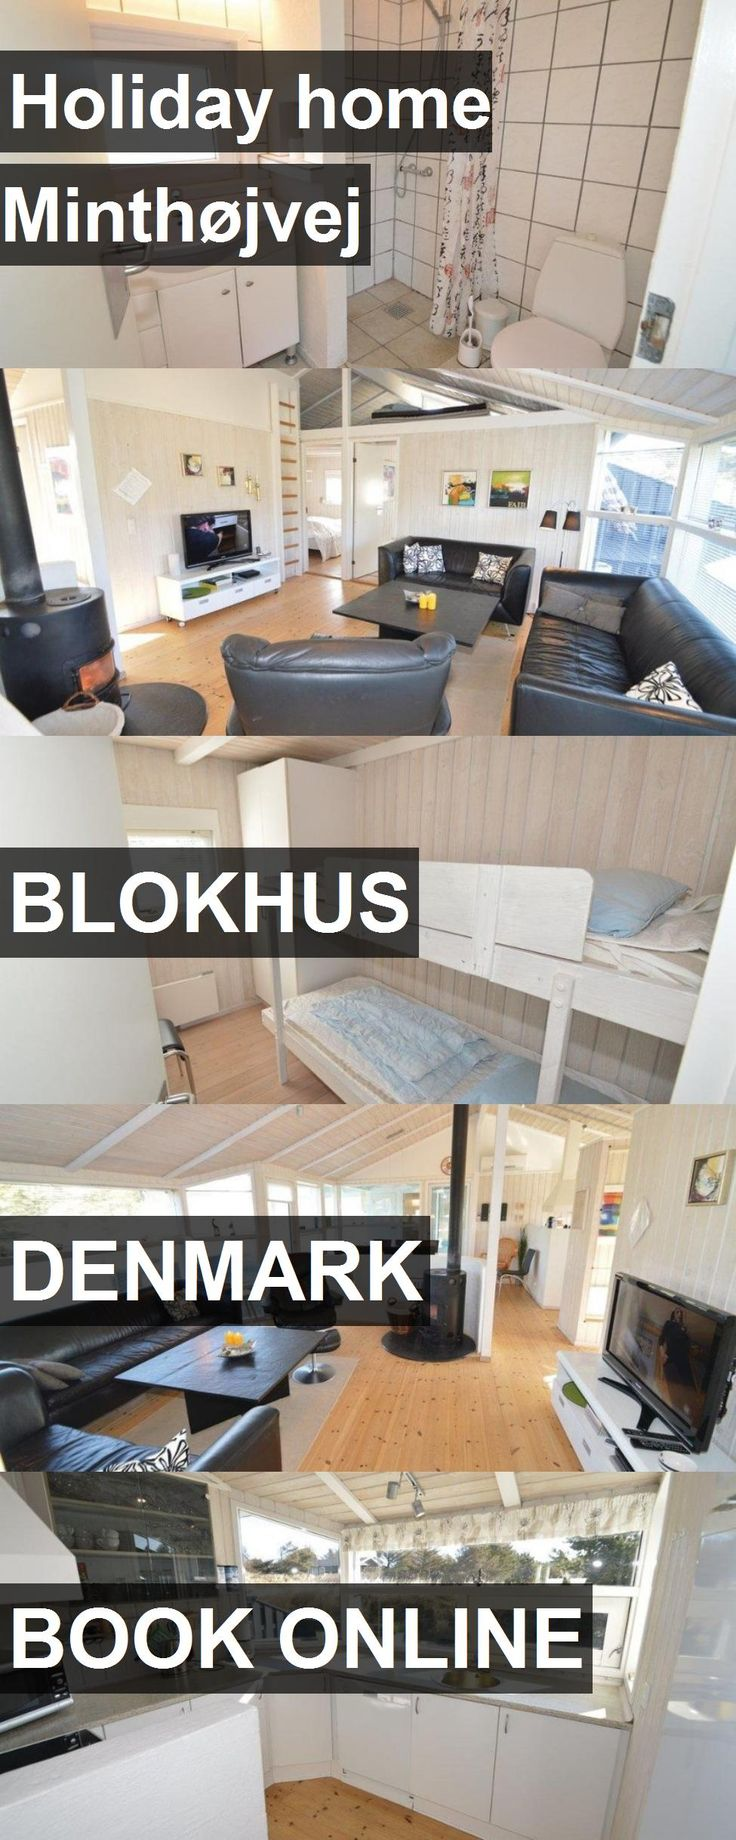 Hotel Holiday home Minthøjvej in Blokhus, Denmark. For more information, photos, reviews and best prices please follow the link. #Denmark #Blokhus #hotel #travel #vacation